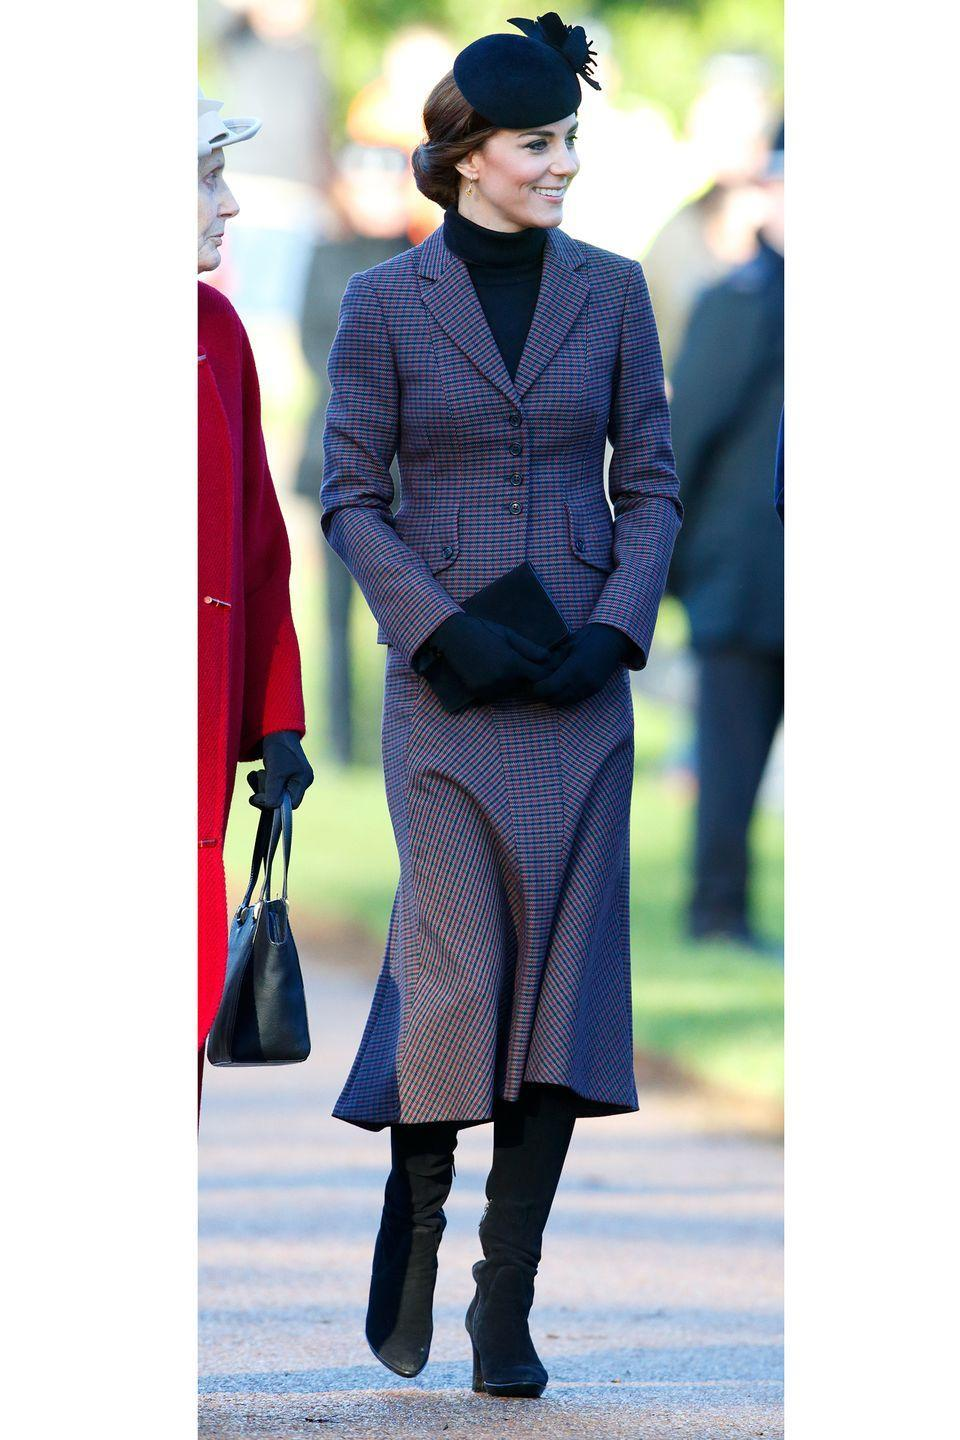 <p>The Duchess of Cambridge recycled a chic, tweed suit by Michael Kors that she recently wore before the New Year—proving that even royalty wears the same thing twice. </p>